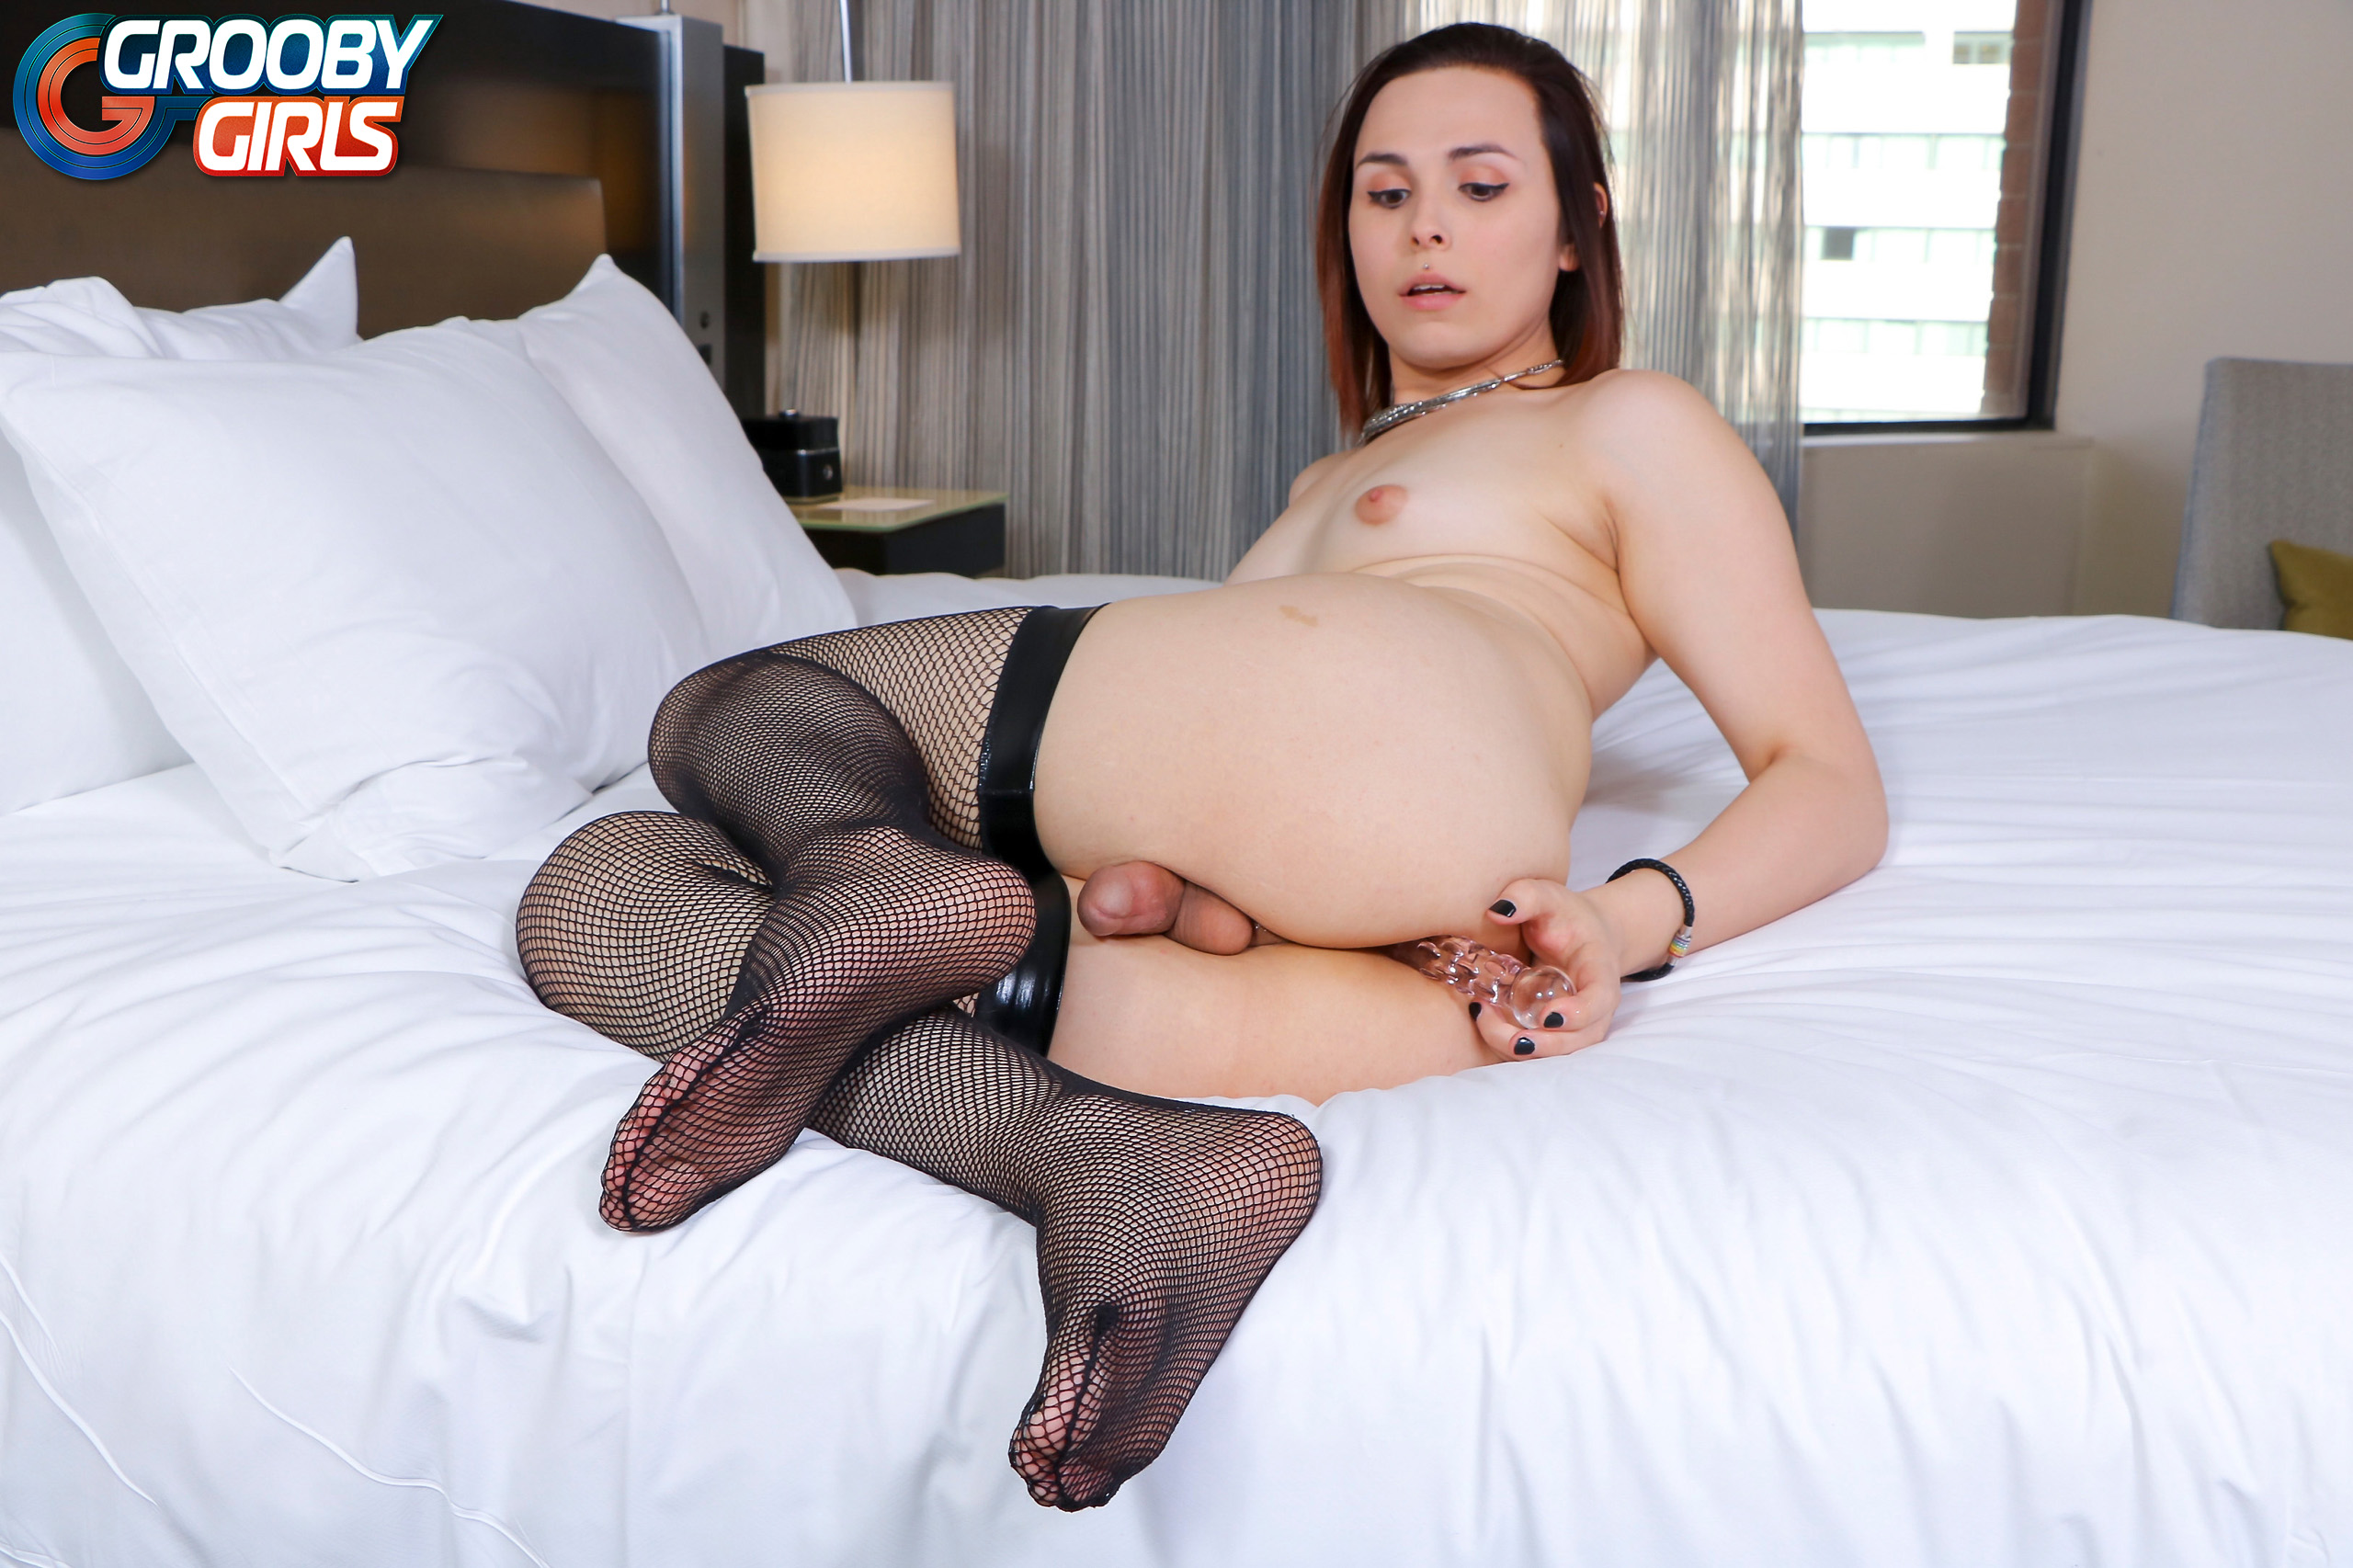 Jenna tales is a gorgeous grooby girl with an amazing body free shemale gallery